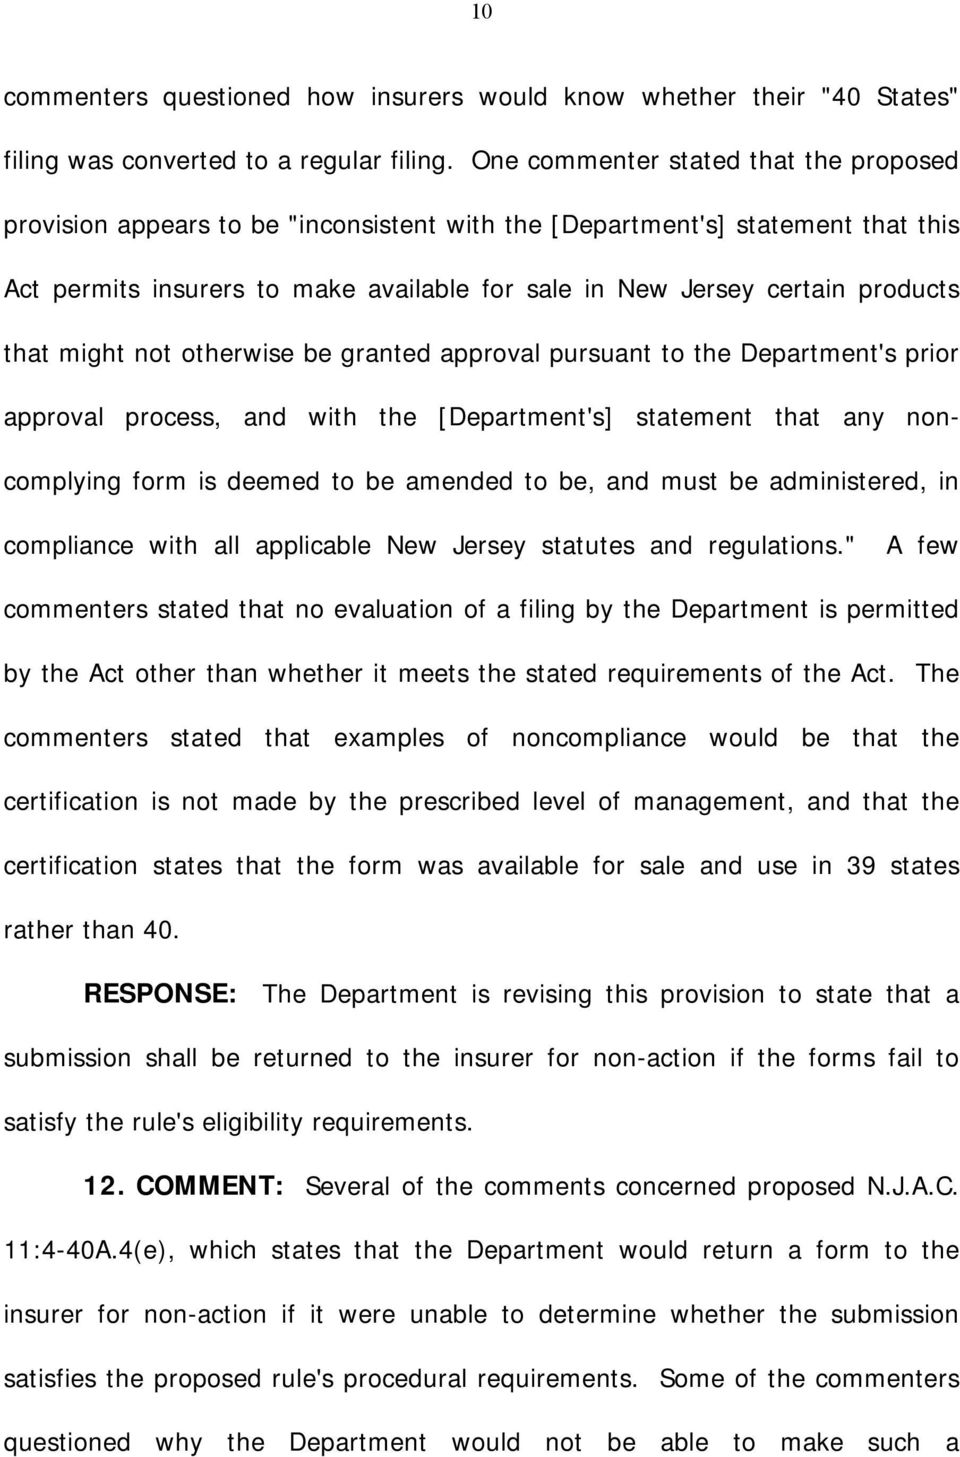 that might not otherwise be granted approval pursuant to the Department's prior approval process, and with the [Department's] statement that any noncomplying form is deemed to be amended to be, and